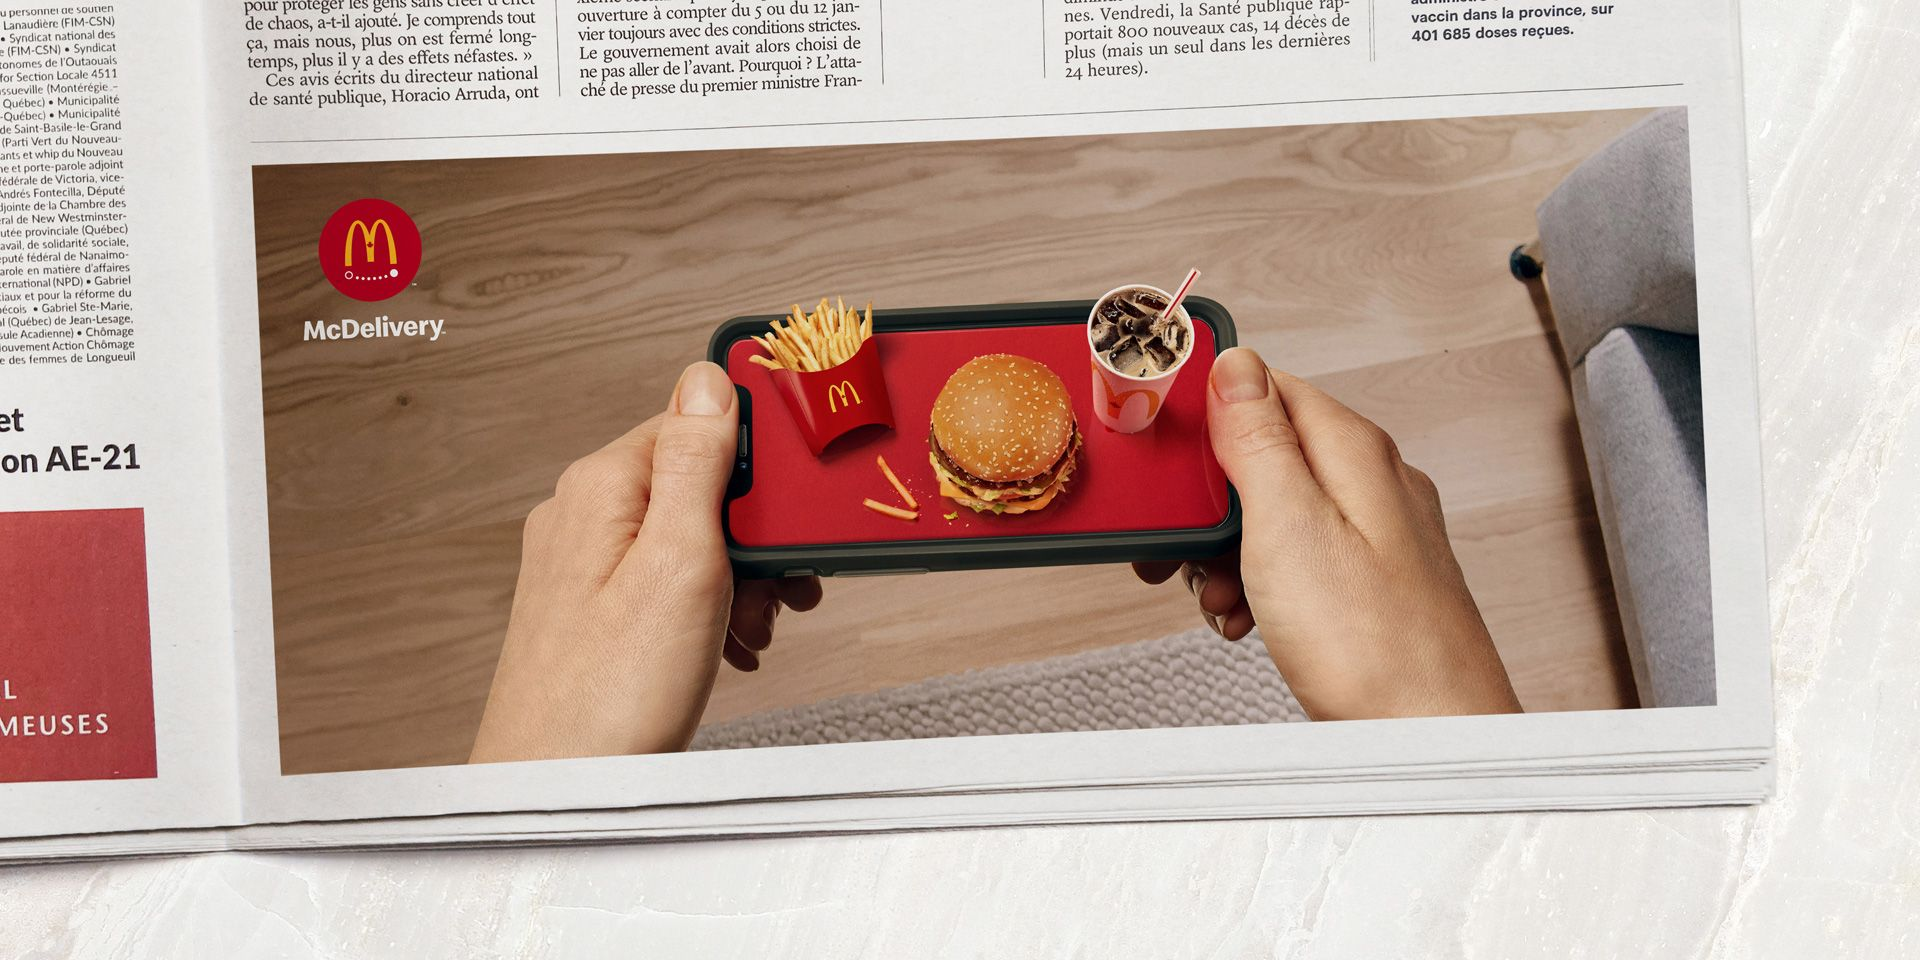 In a newspaper is a picture ad of two hands holding a tray which is a cellphone with a McDonald's trio on it.